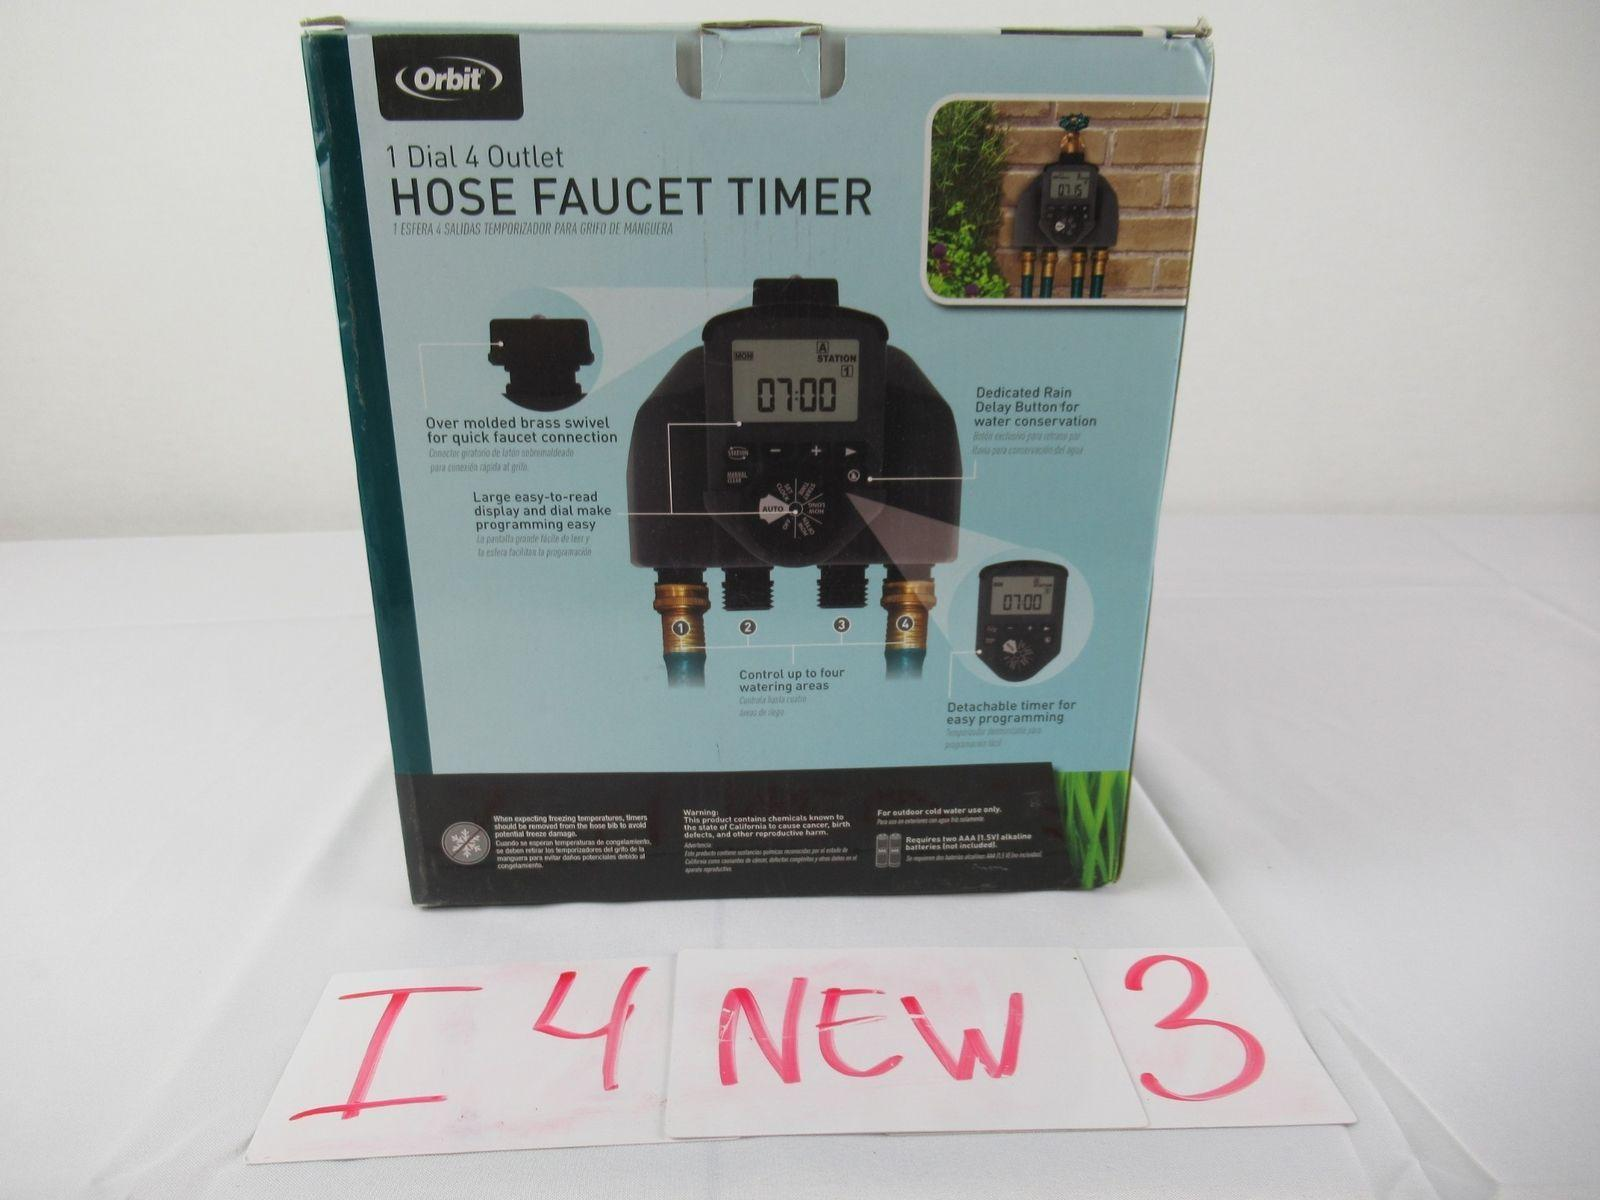 Lot of 3 Orbit 1-Dial 4 Outlet Hose Faucet Timer Conserve with Original Box